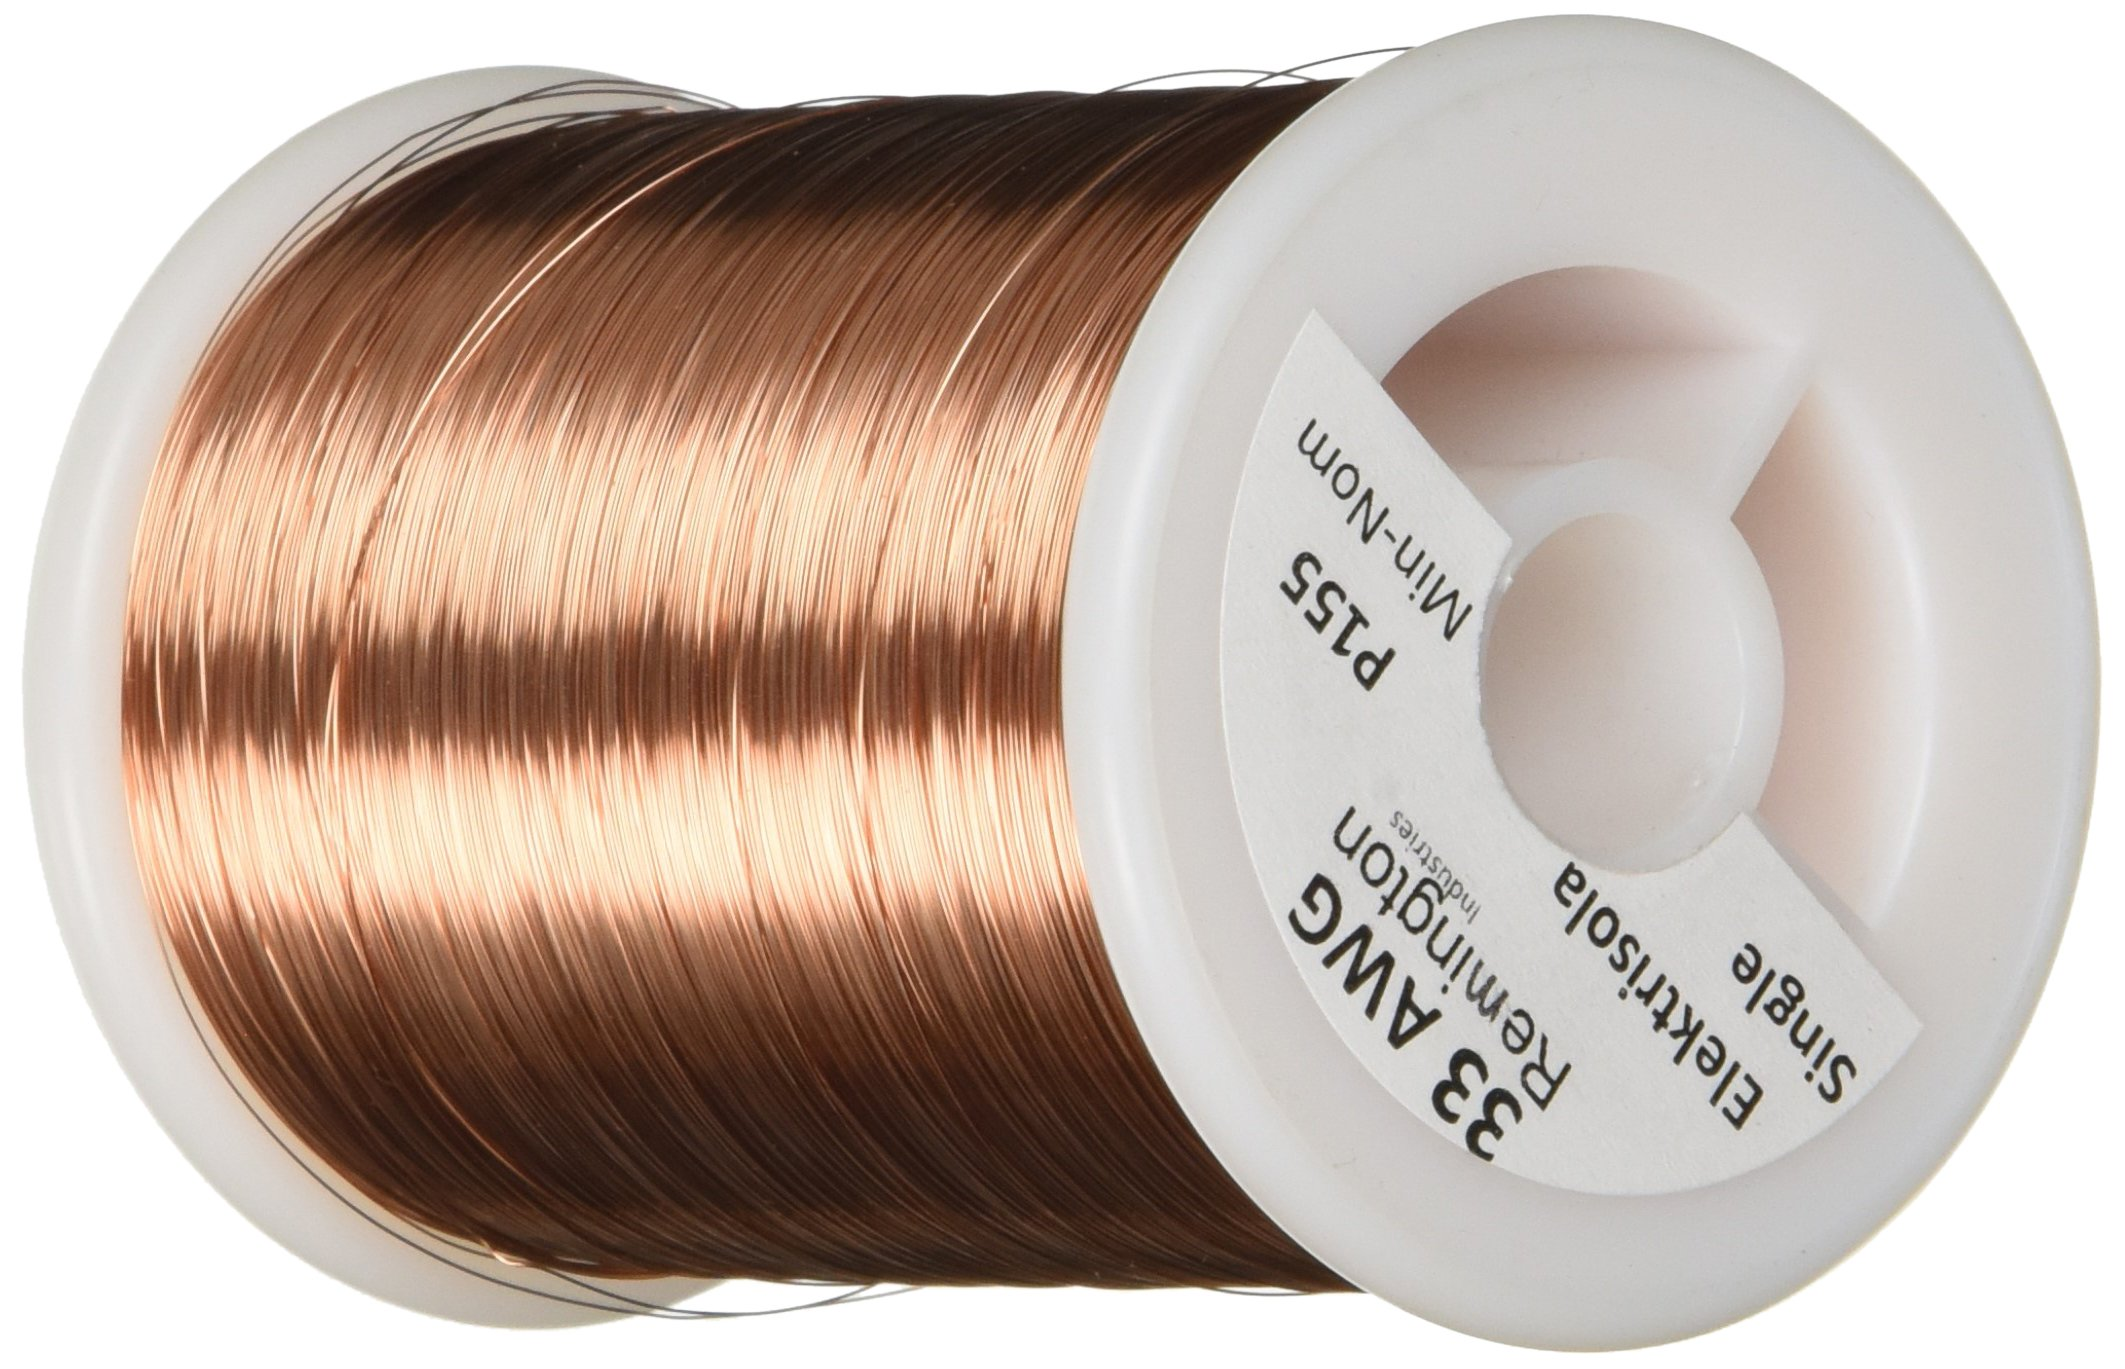 Remington Industries 33SNSP 33 AWG Magnet Wire, Enameled Copper Wire, 1.0 lb, 0.0077'' Diameter, 6352' Length, Natural by Remington Industries